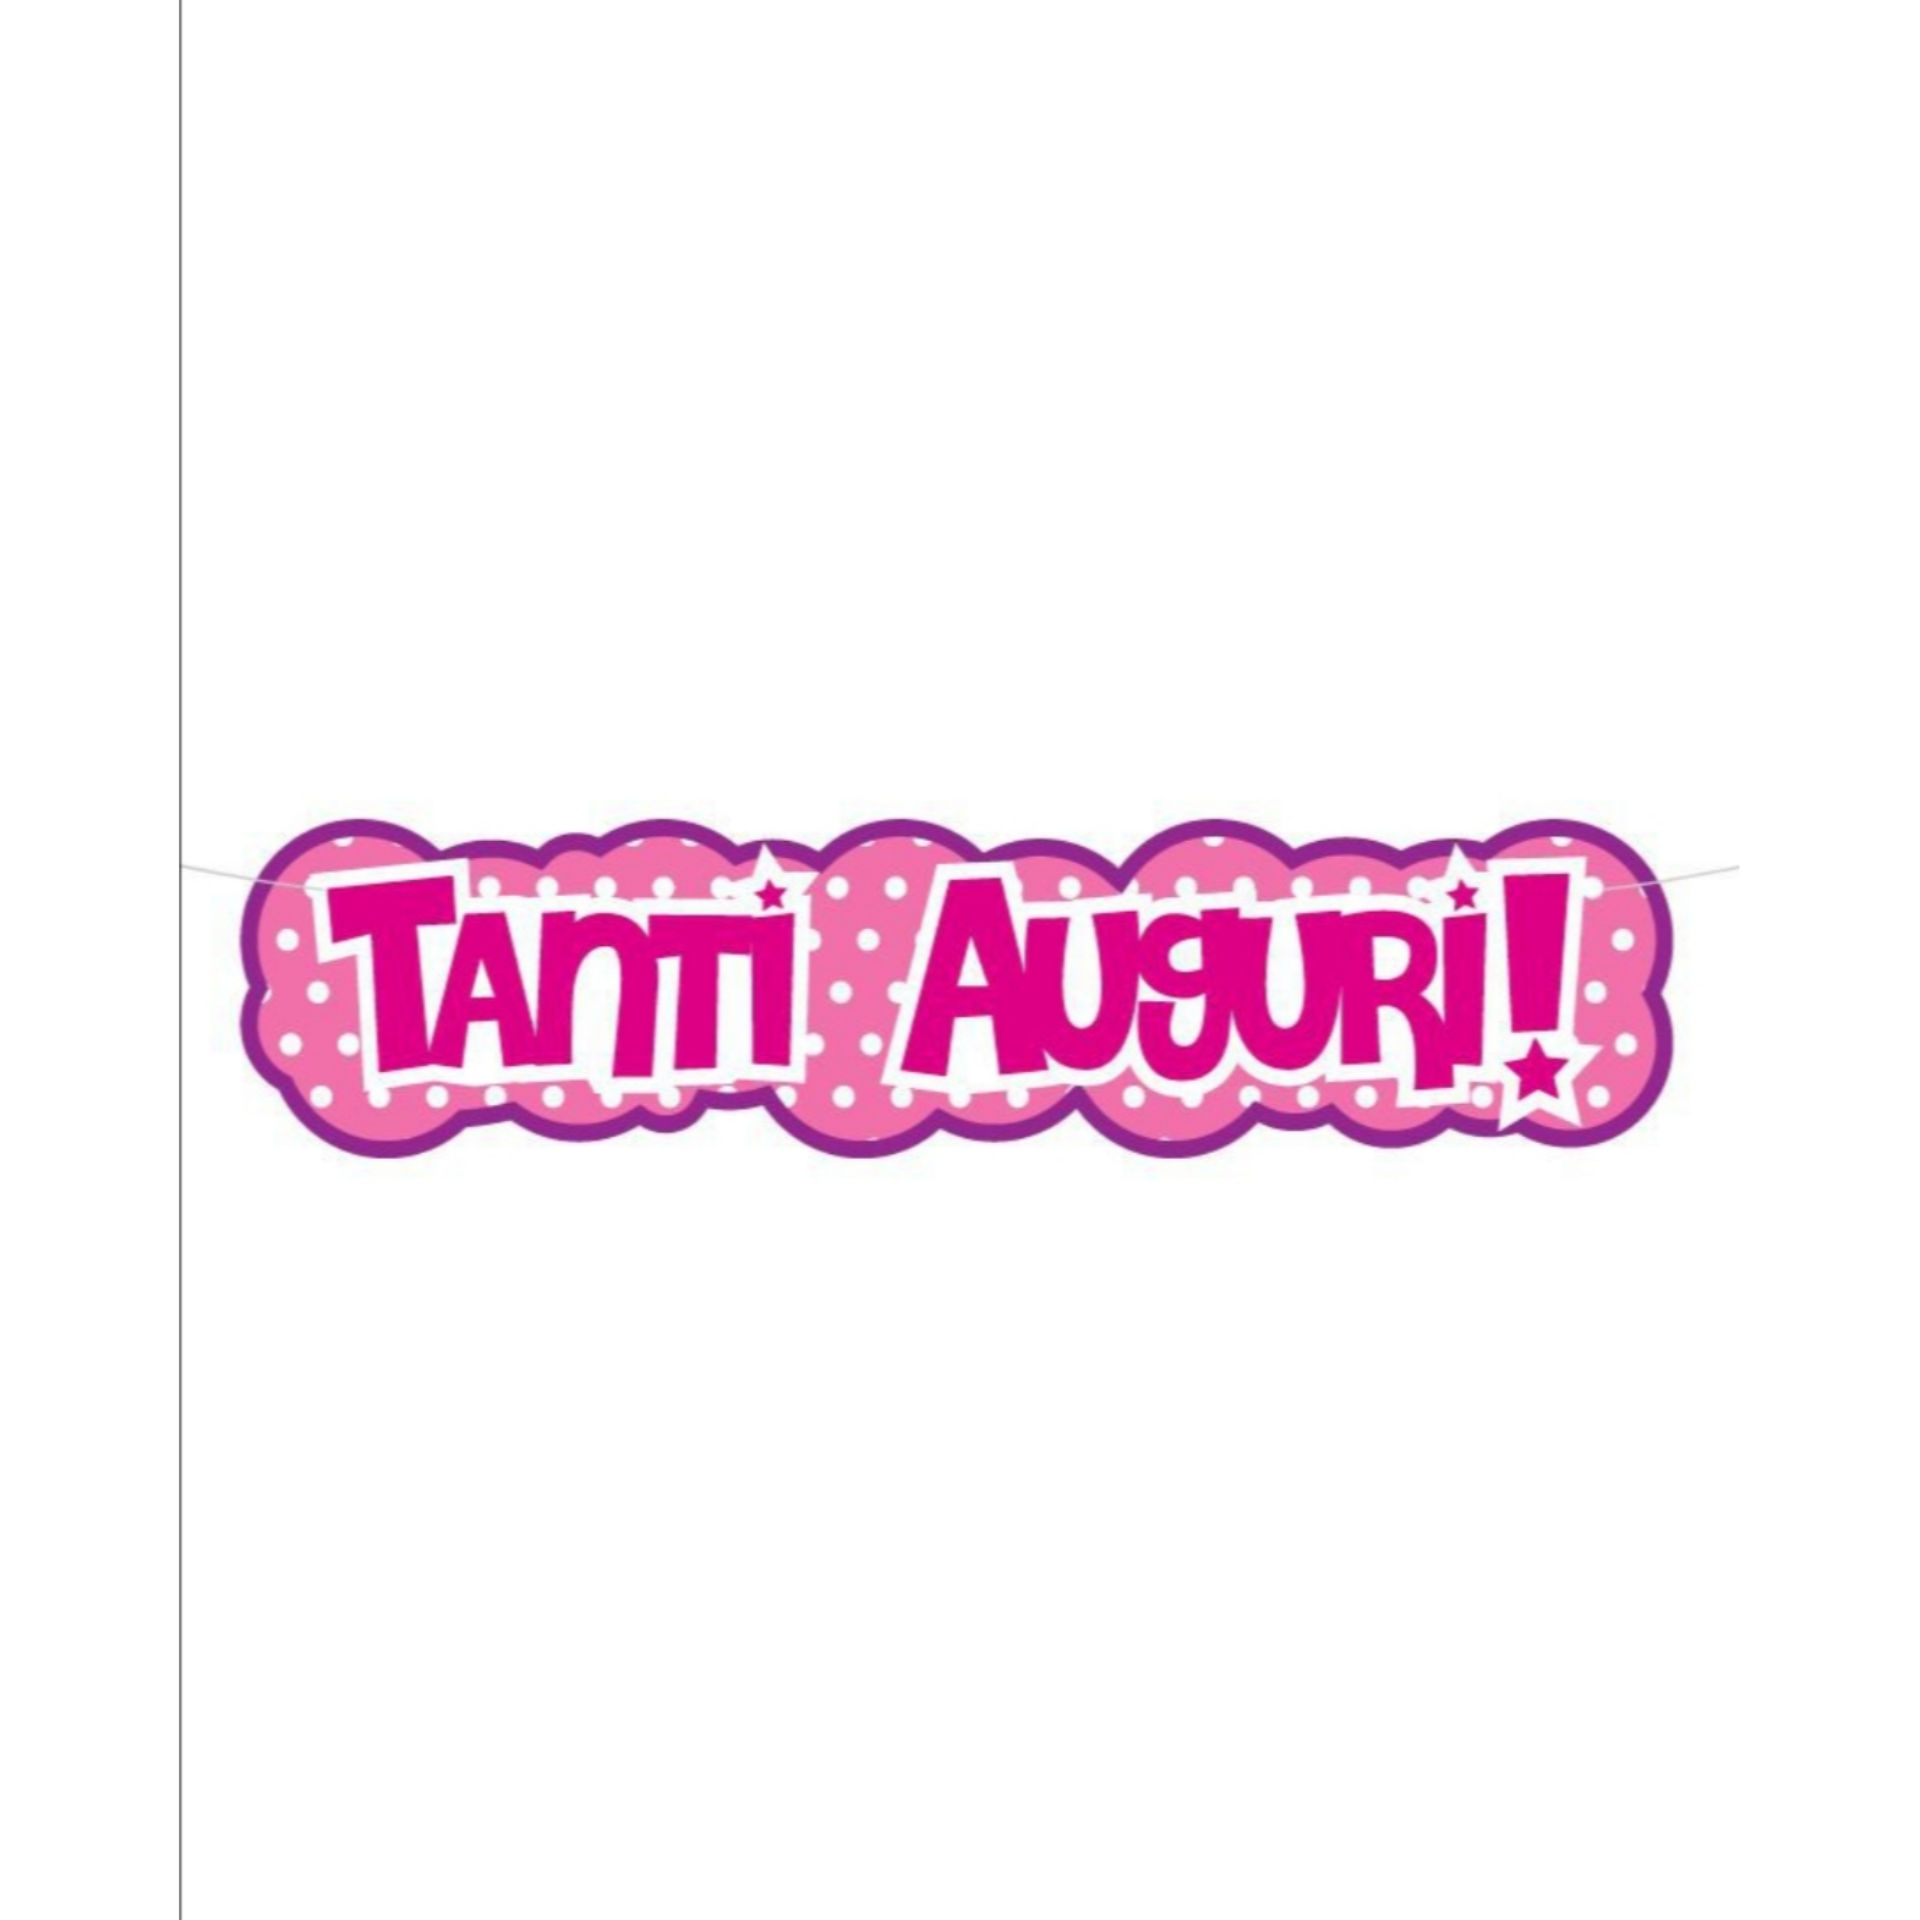 BANNER TANTI AUGURI ROSA 1 MTSweeping Party